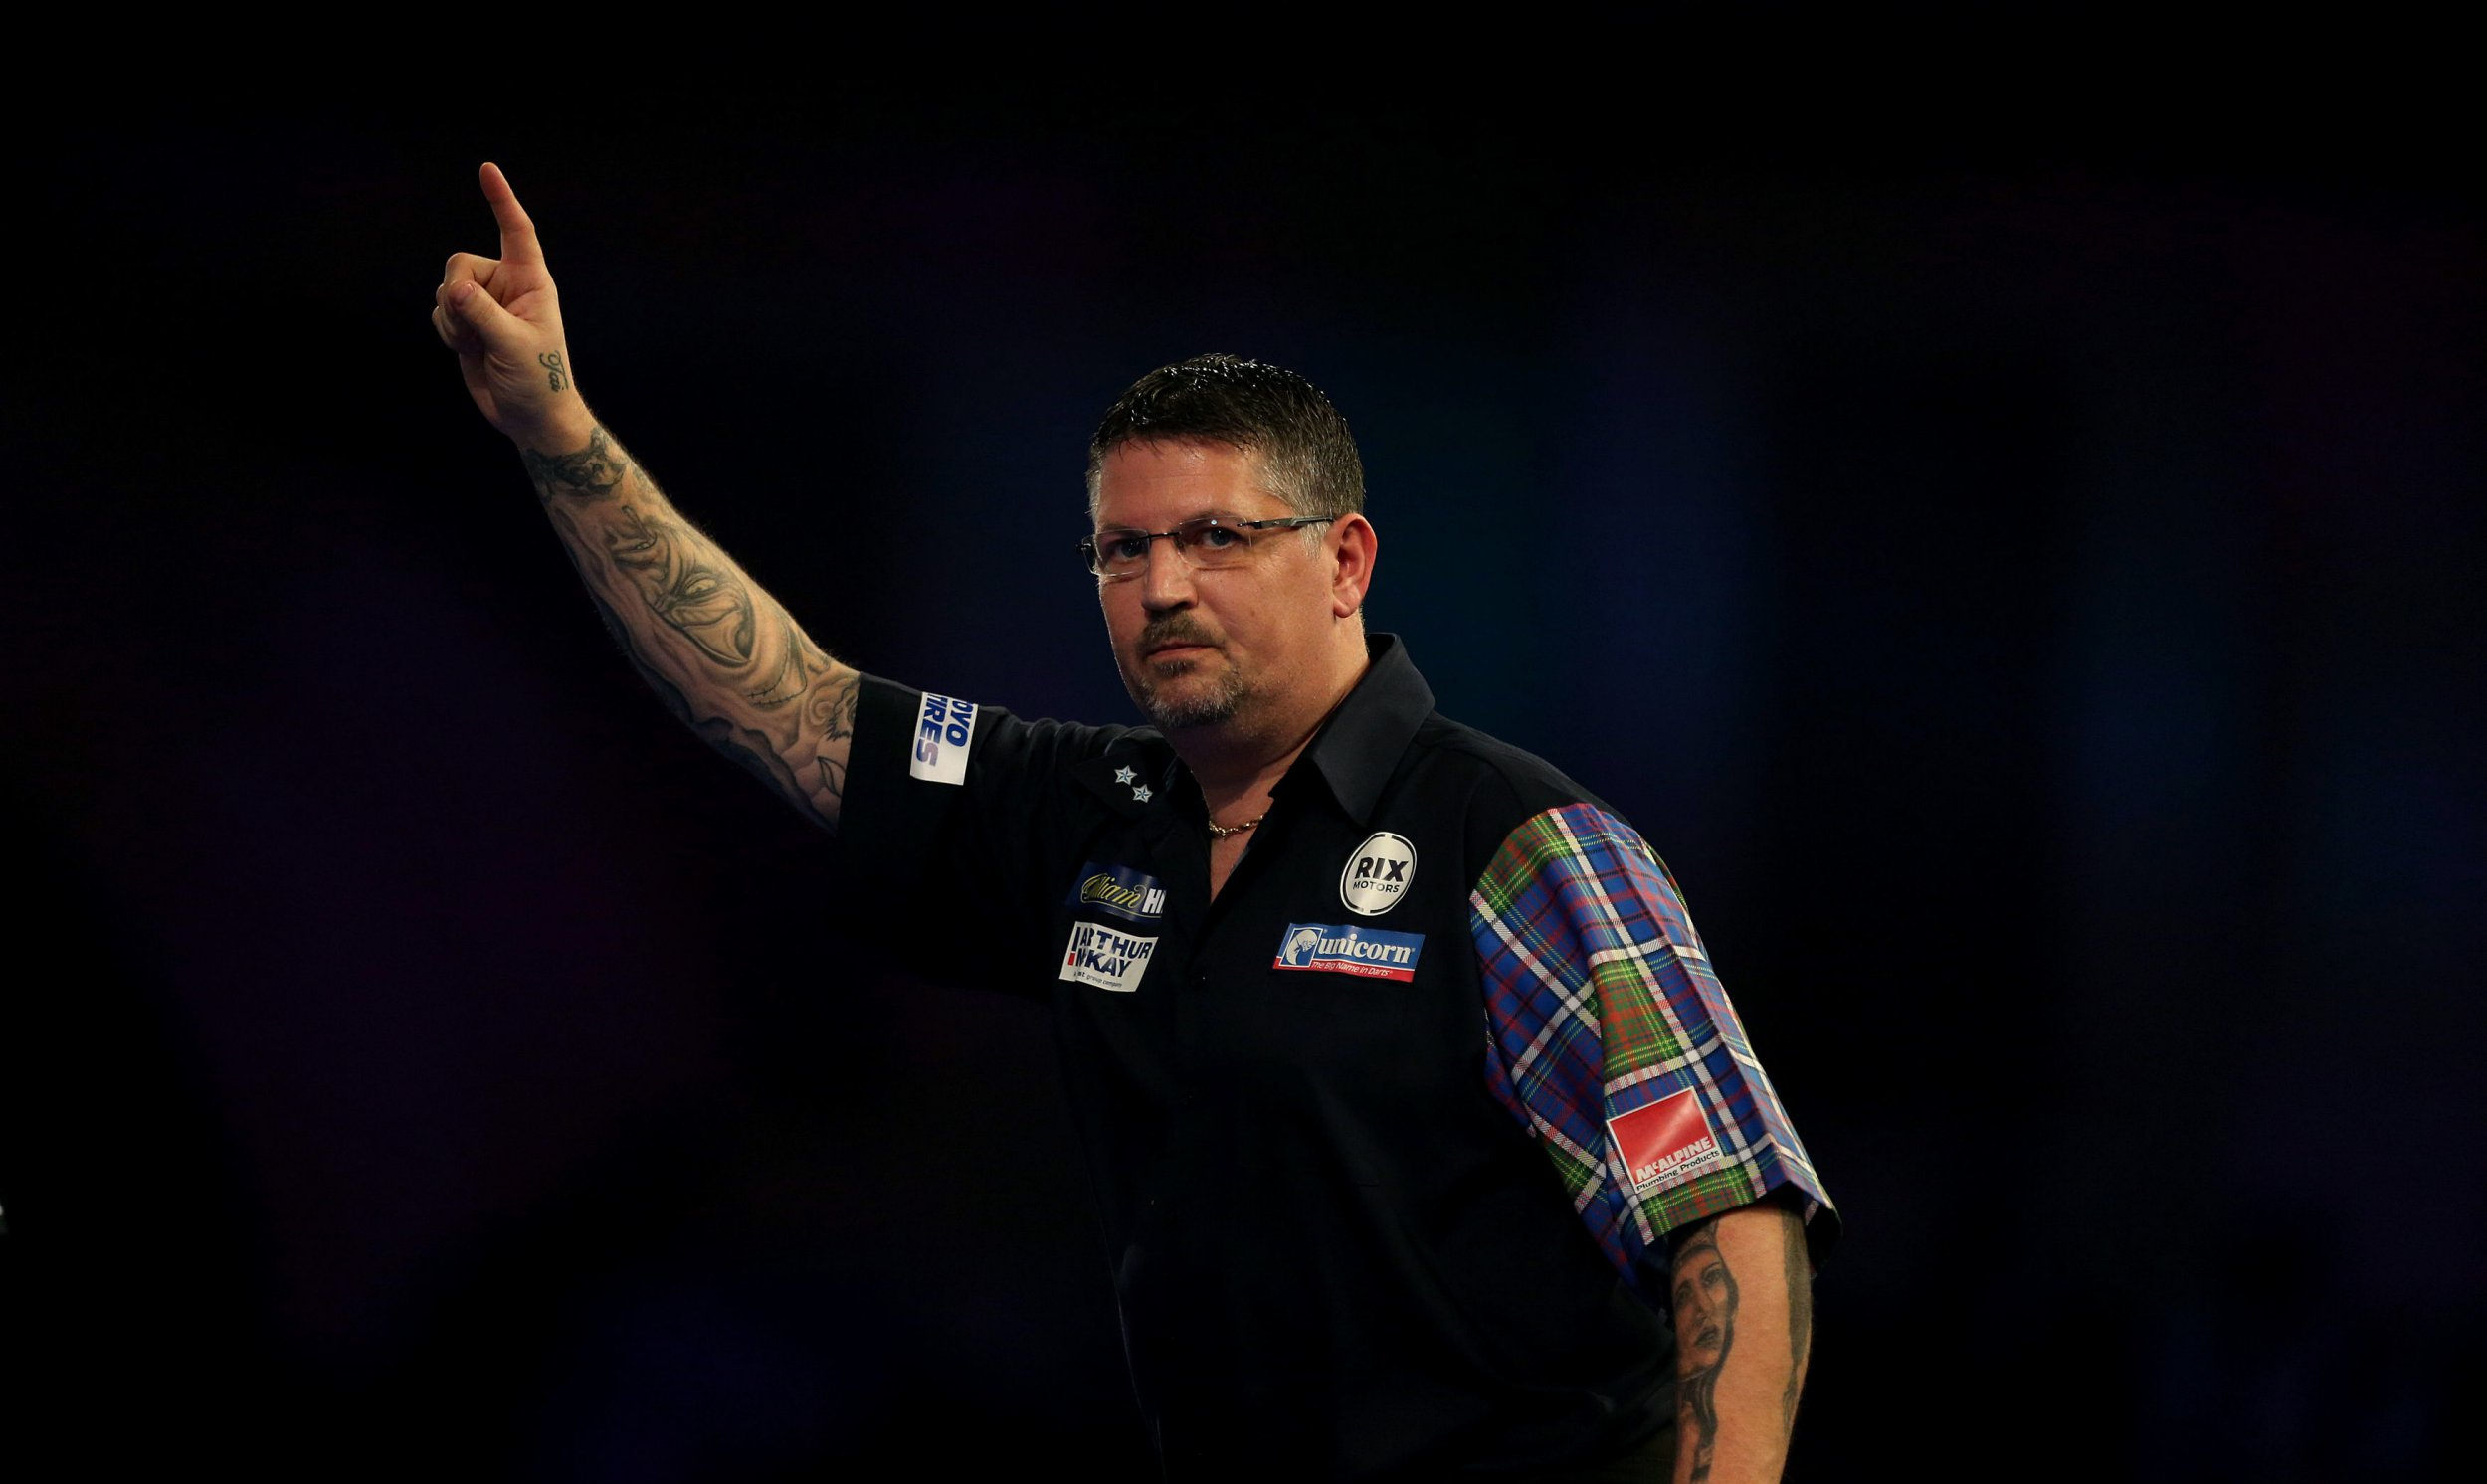 Gary Anderson 'hasn't thrown much at all' ahead of UK Open return